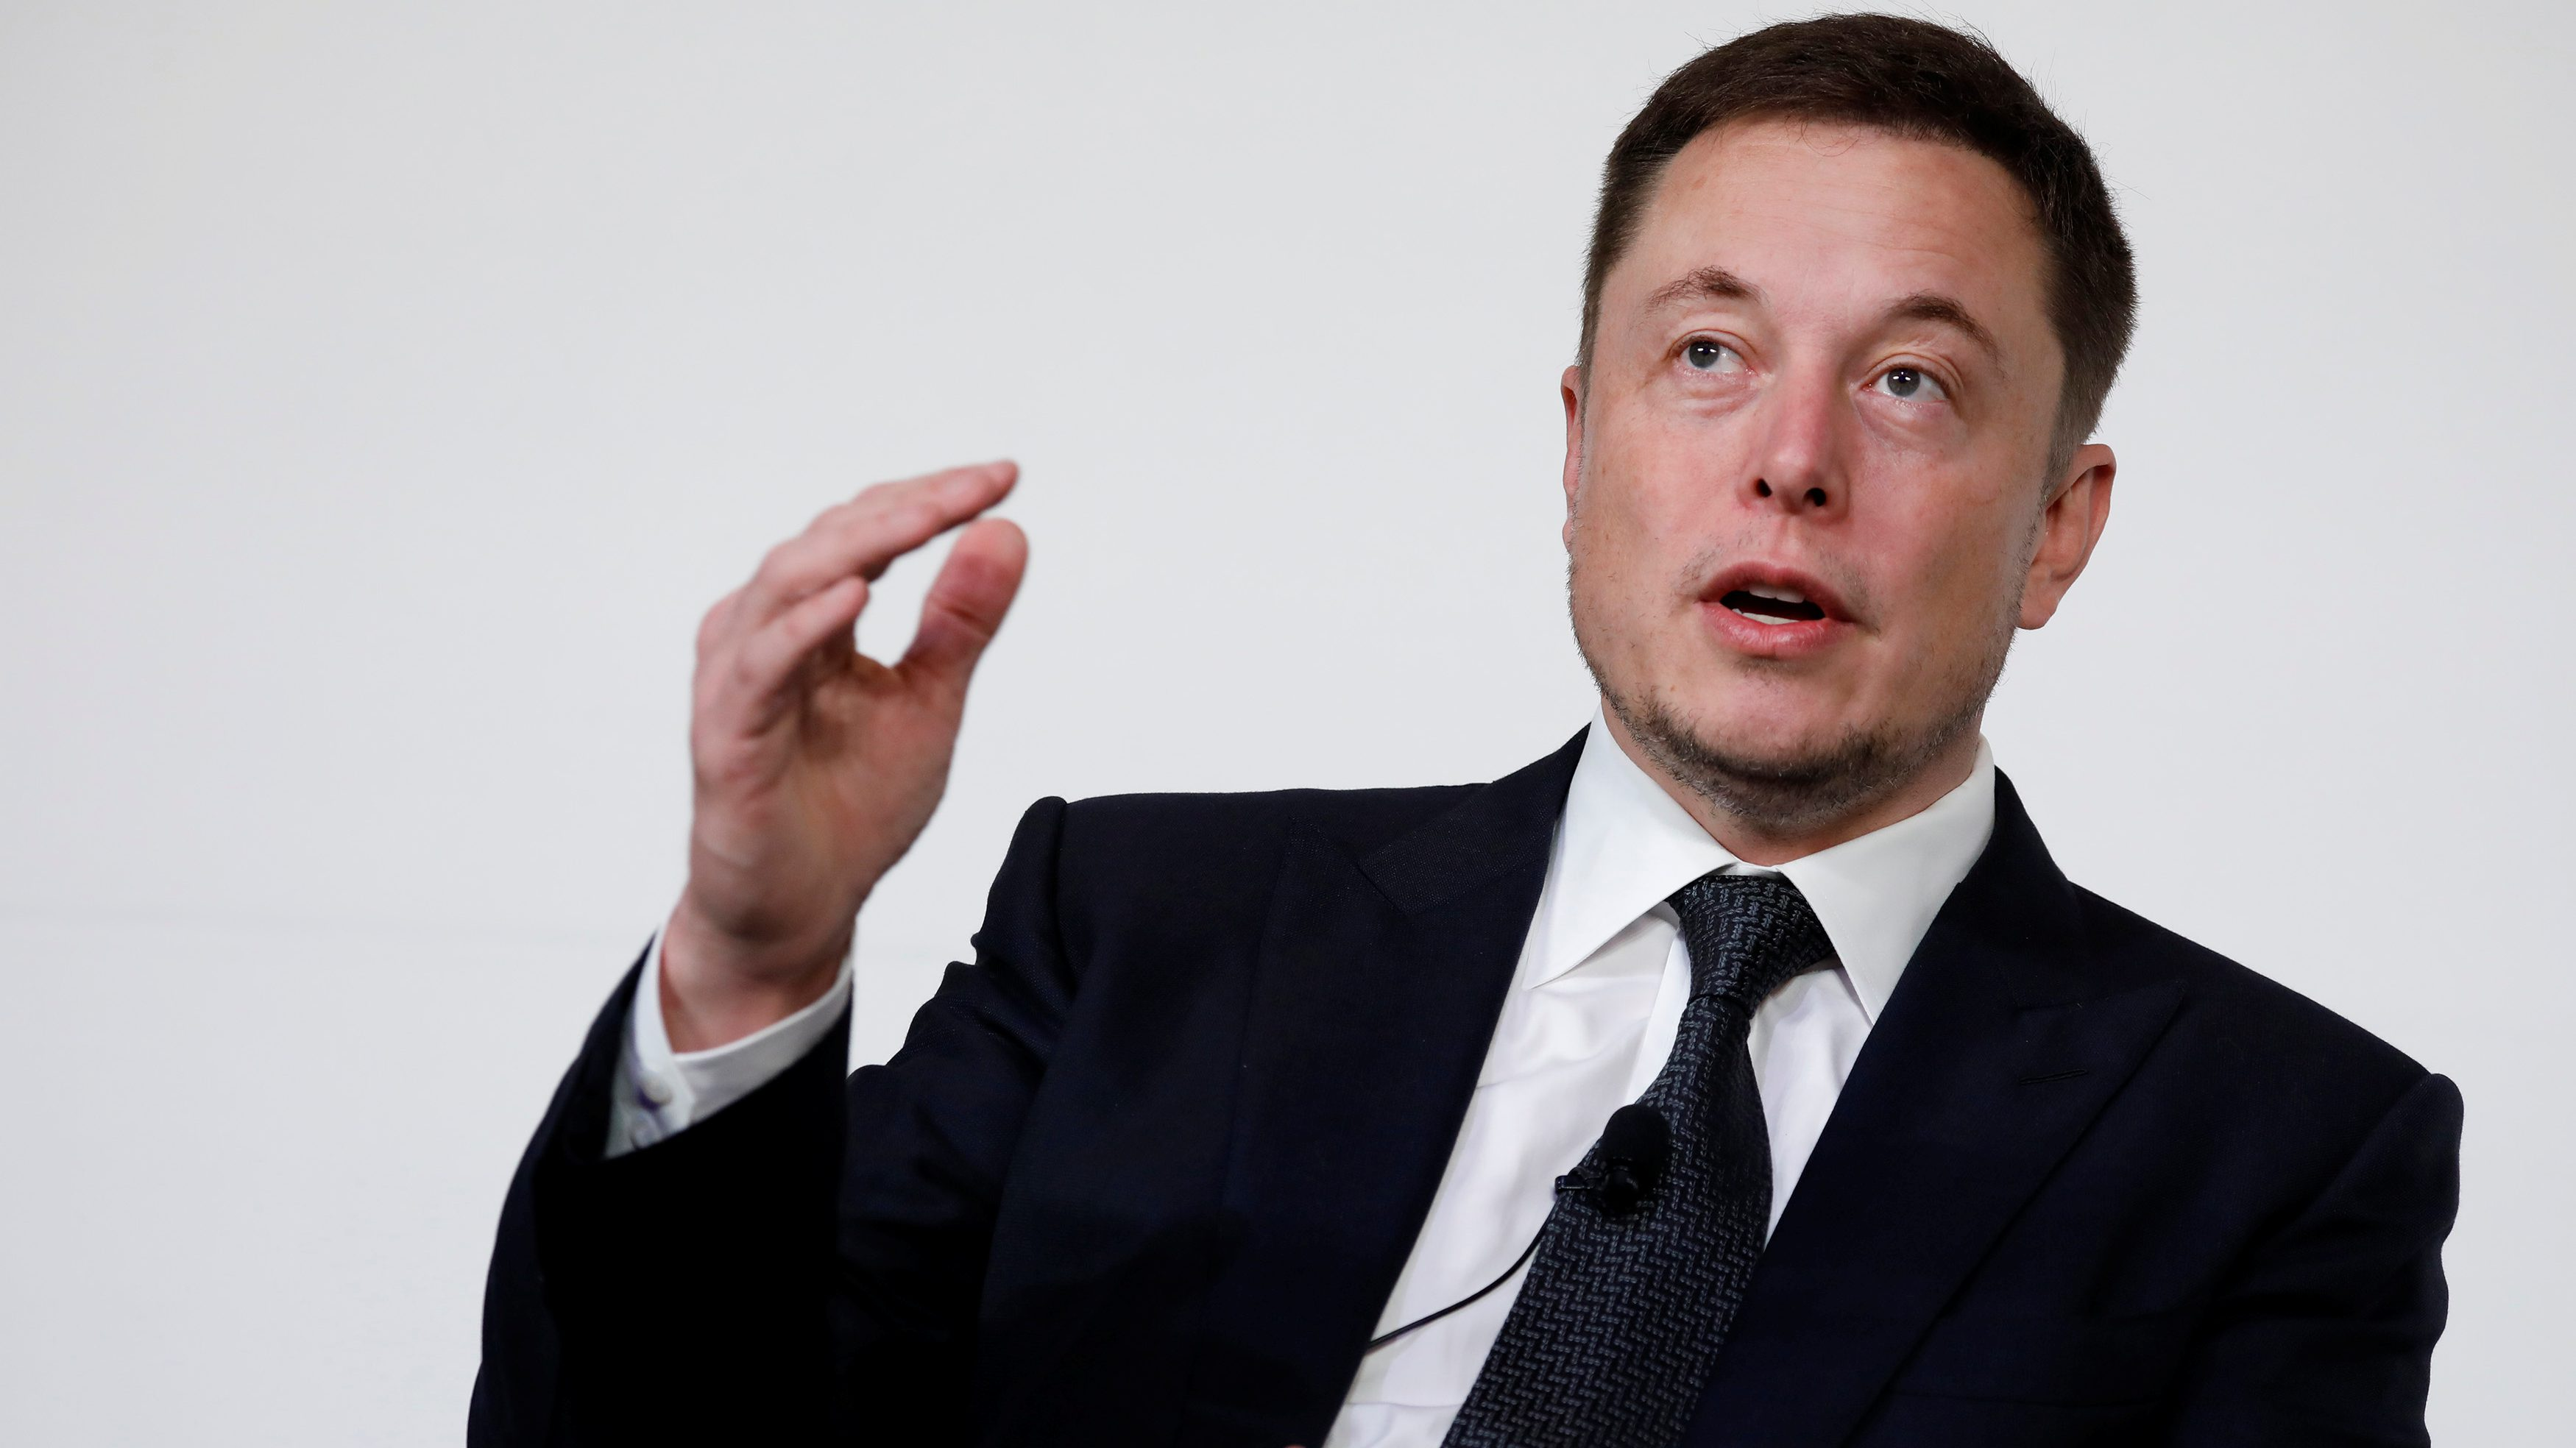 Elon Musk, founder, CEO and lead designer at SpaceX and co-founder of Tesla, speaks at the International Space Station Research and Development Conference.